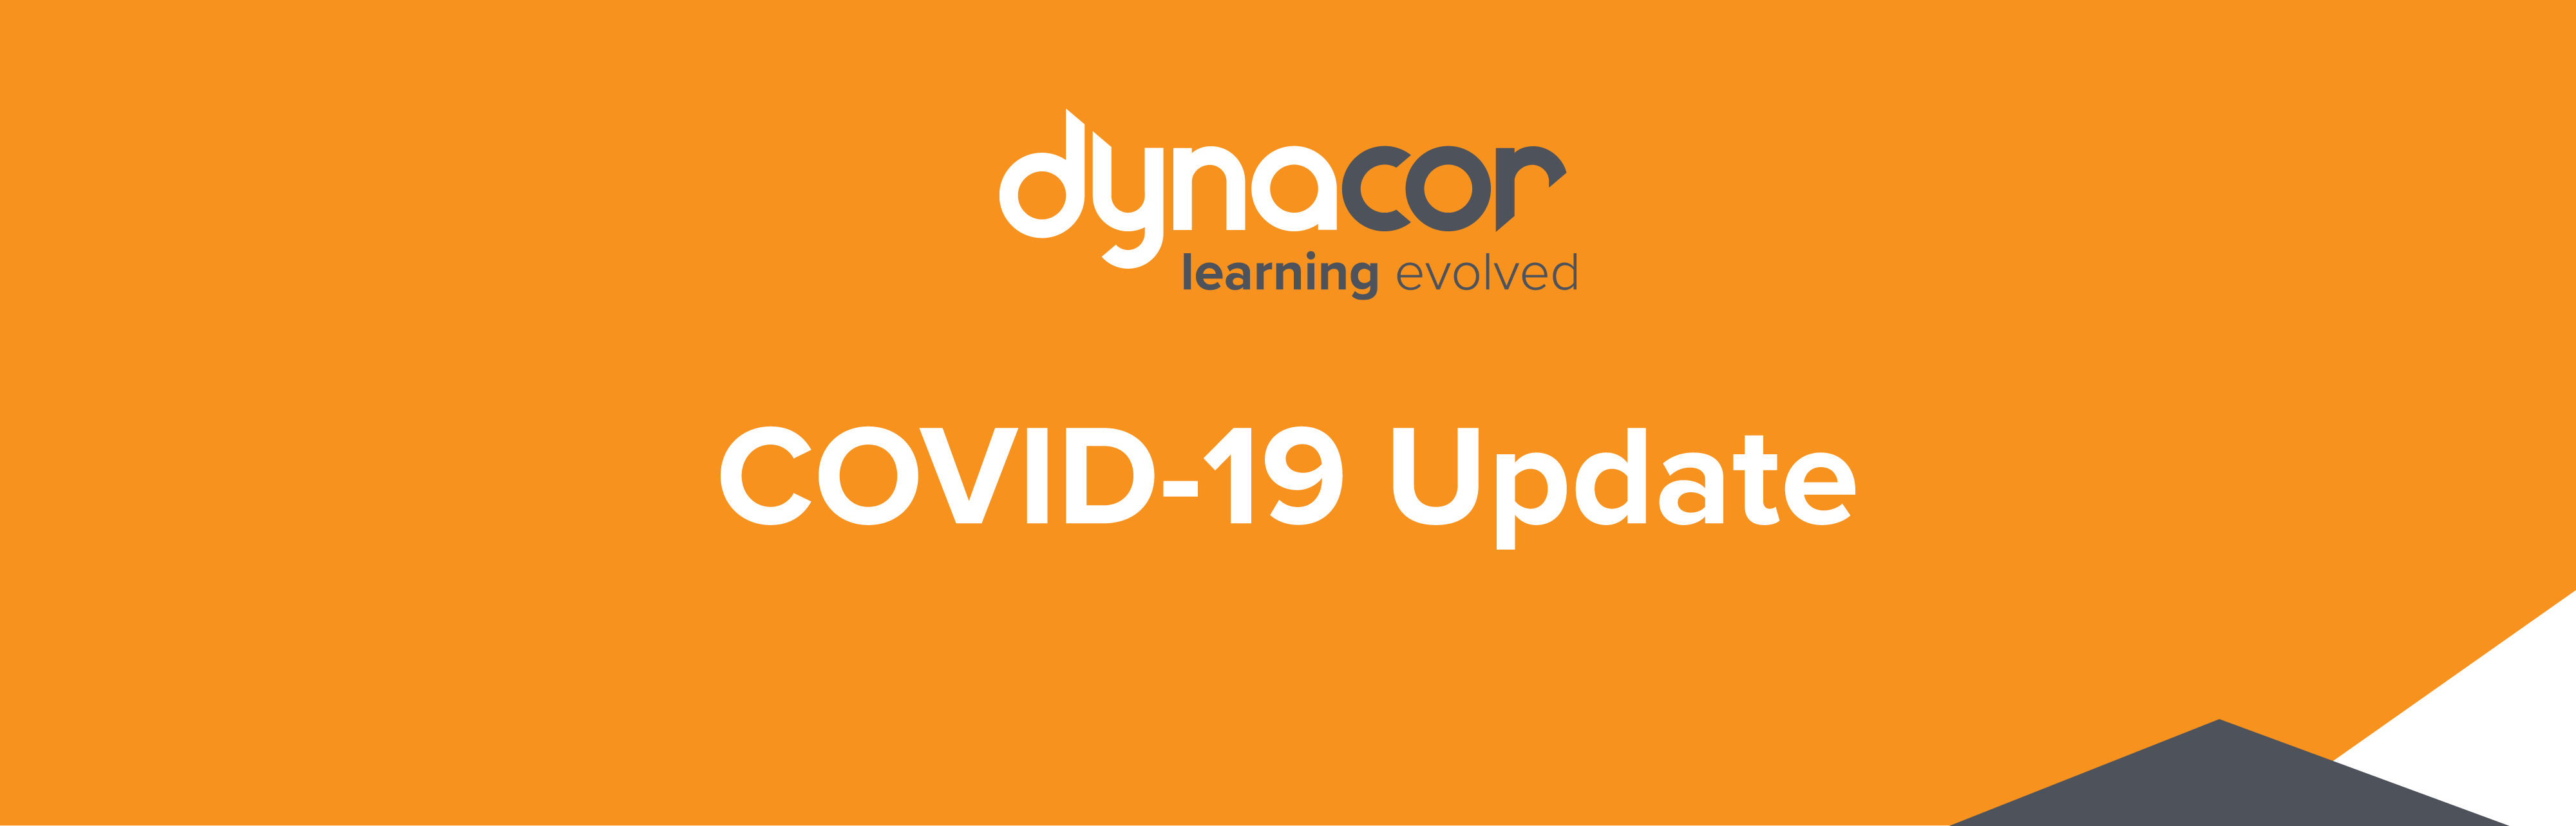 Dynacor's COVID-19 Update